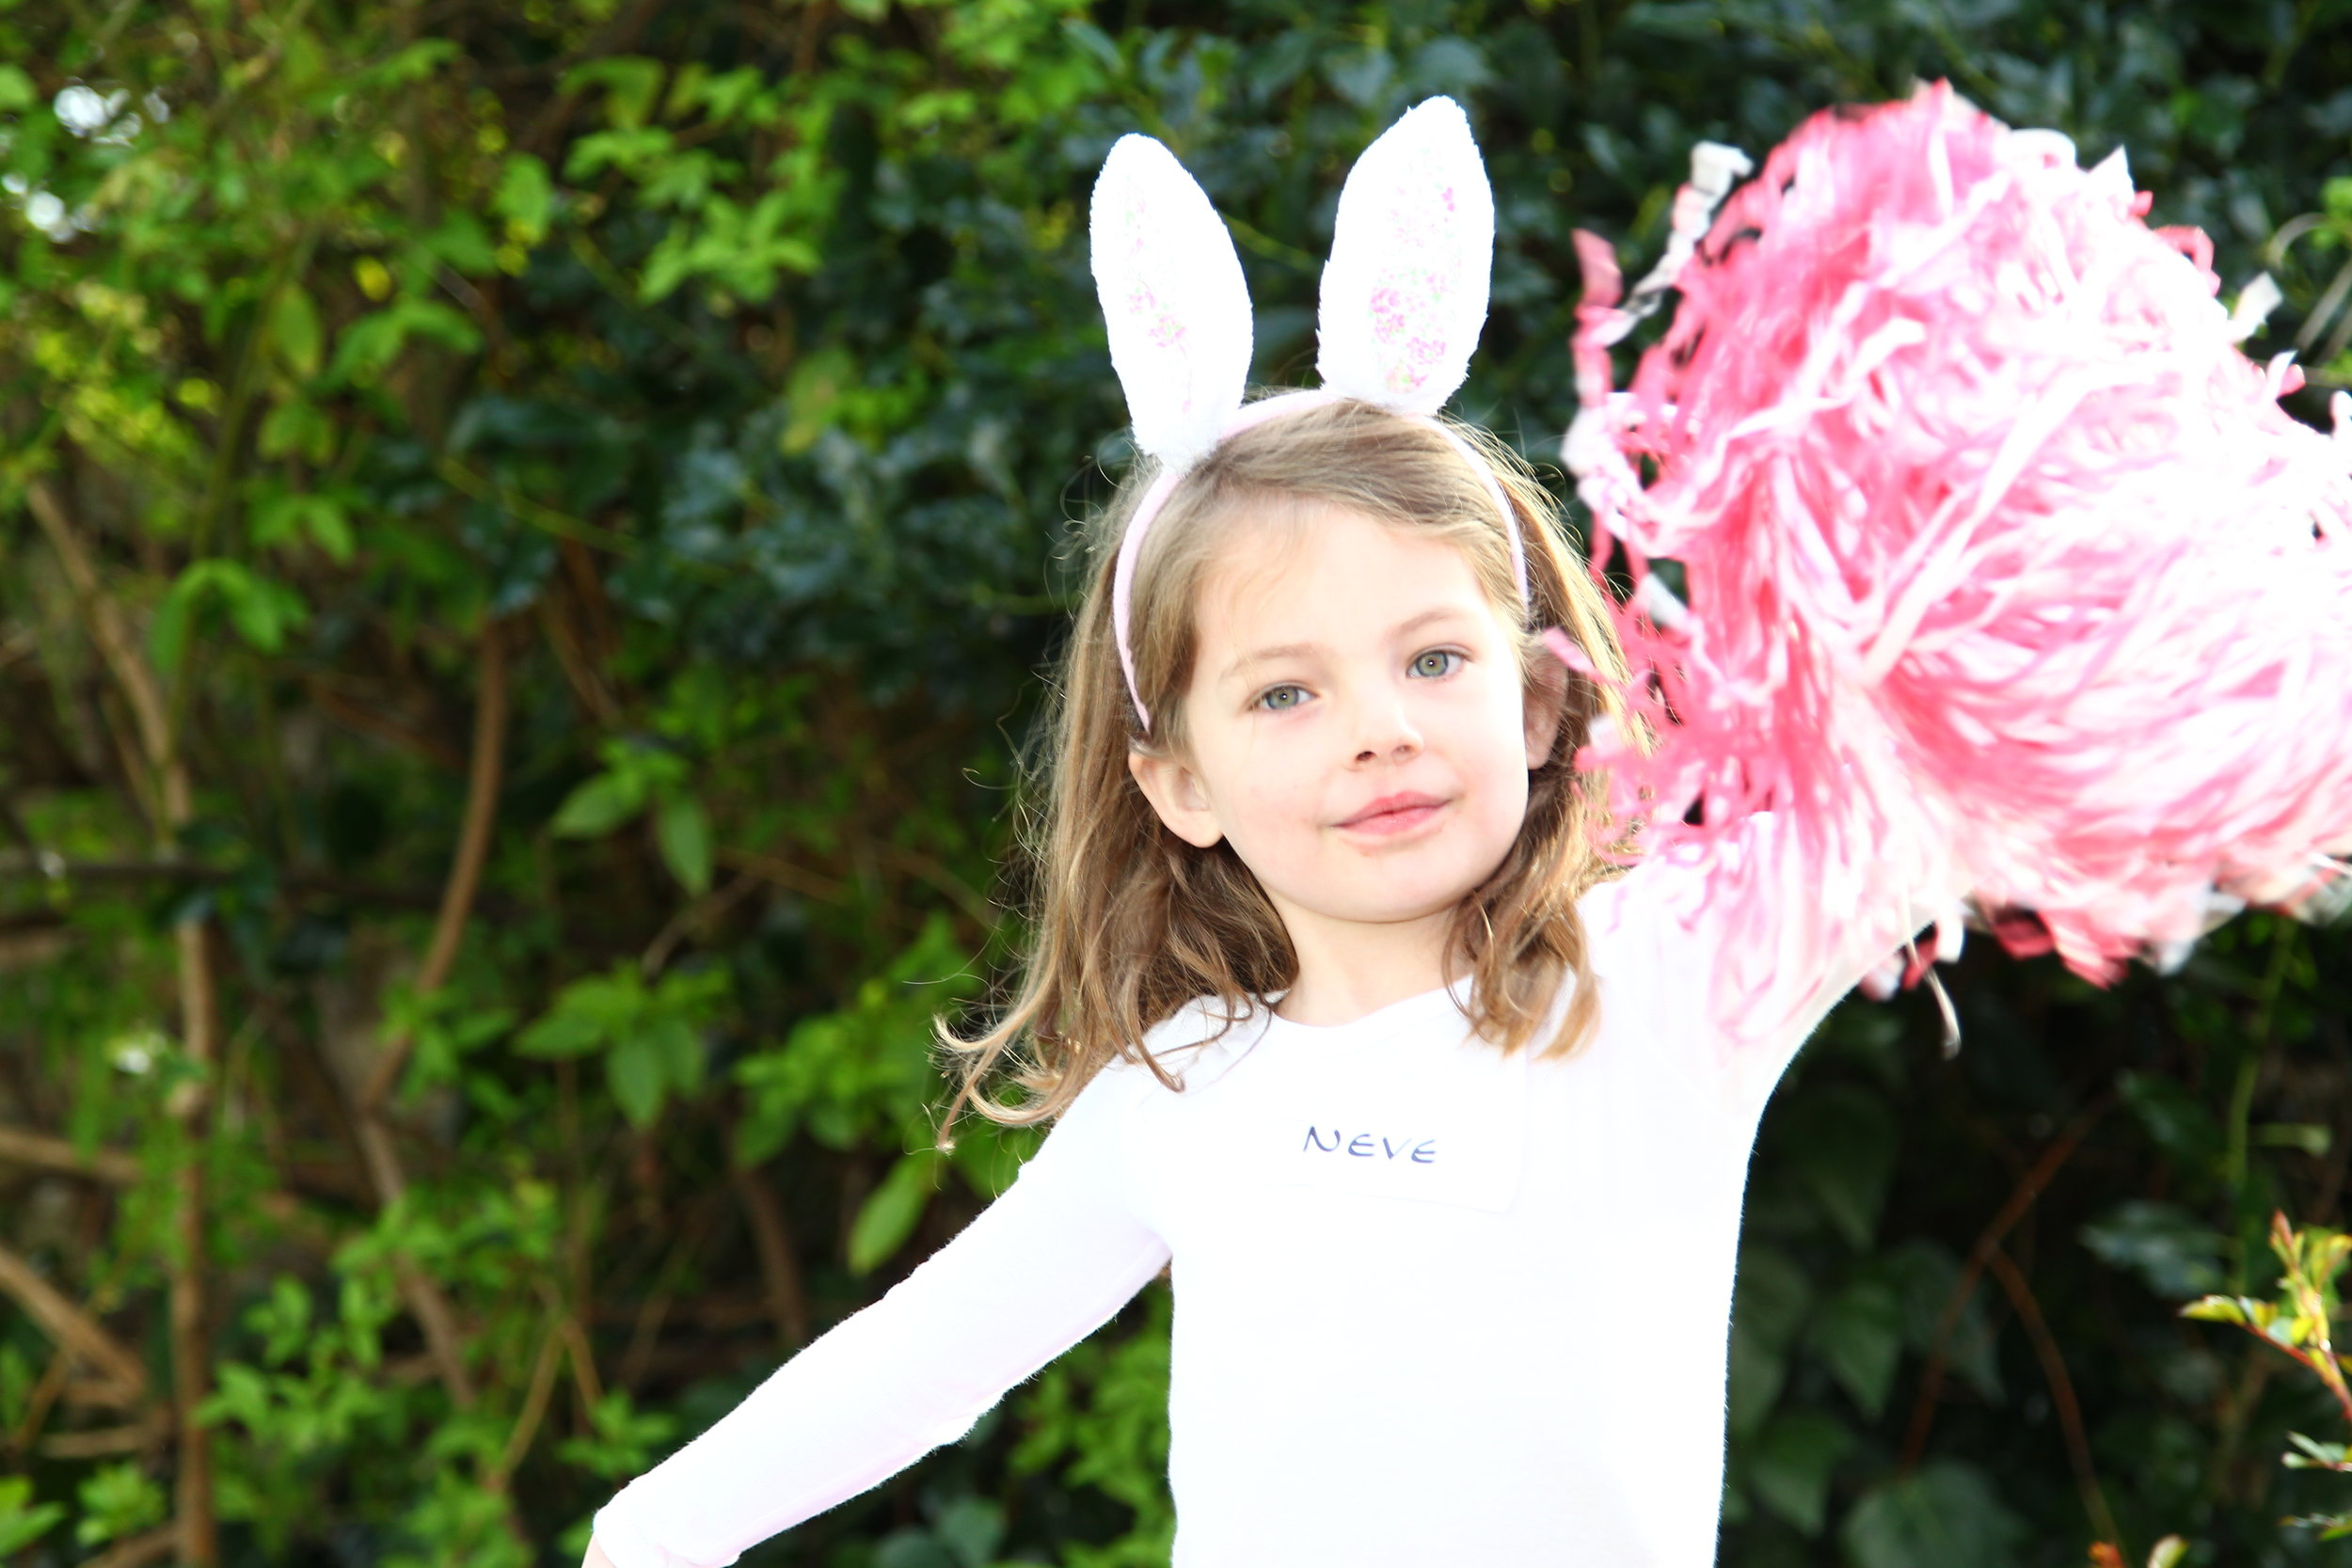 Neve at our annual Easter Egg Hunt (3).JPG